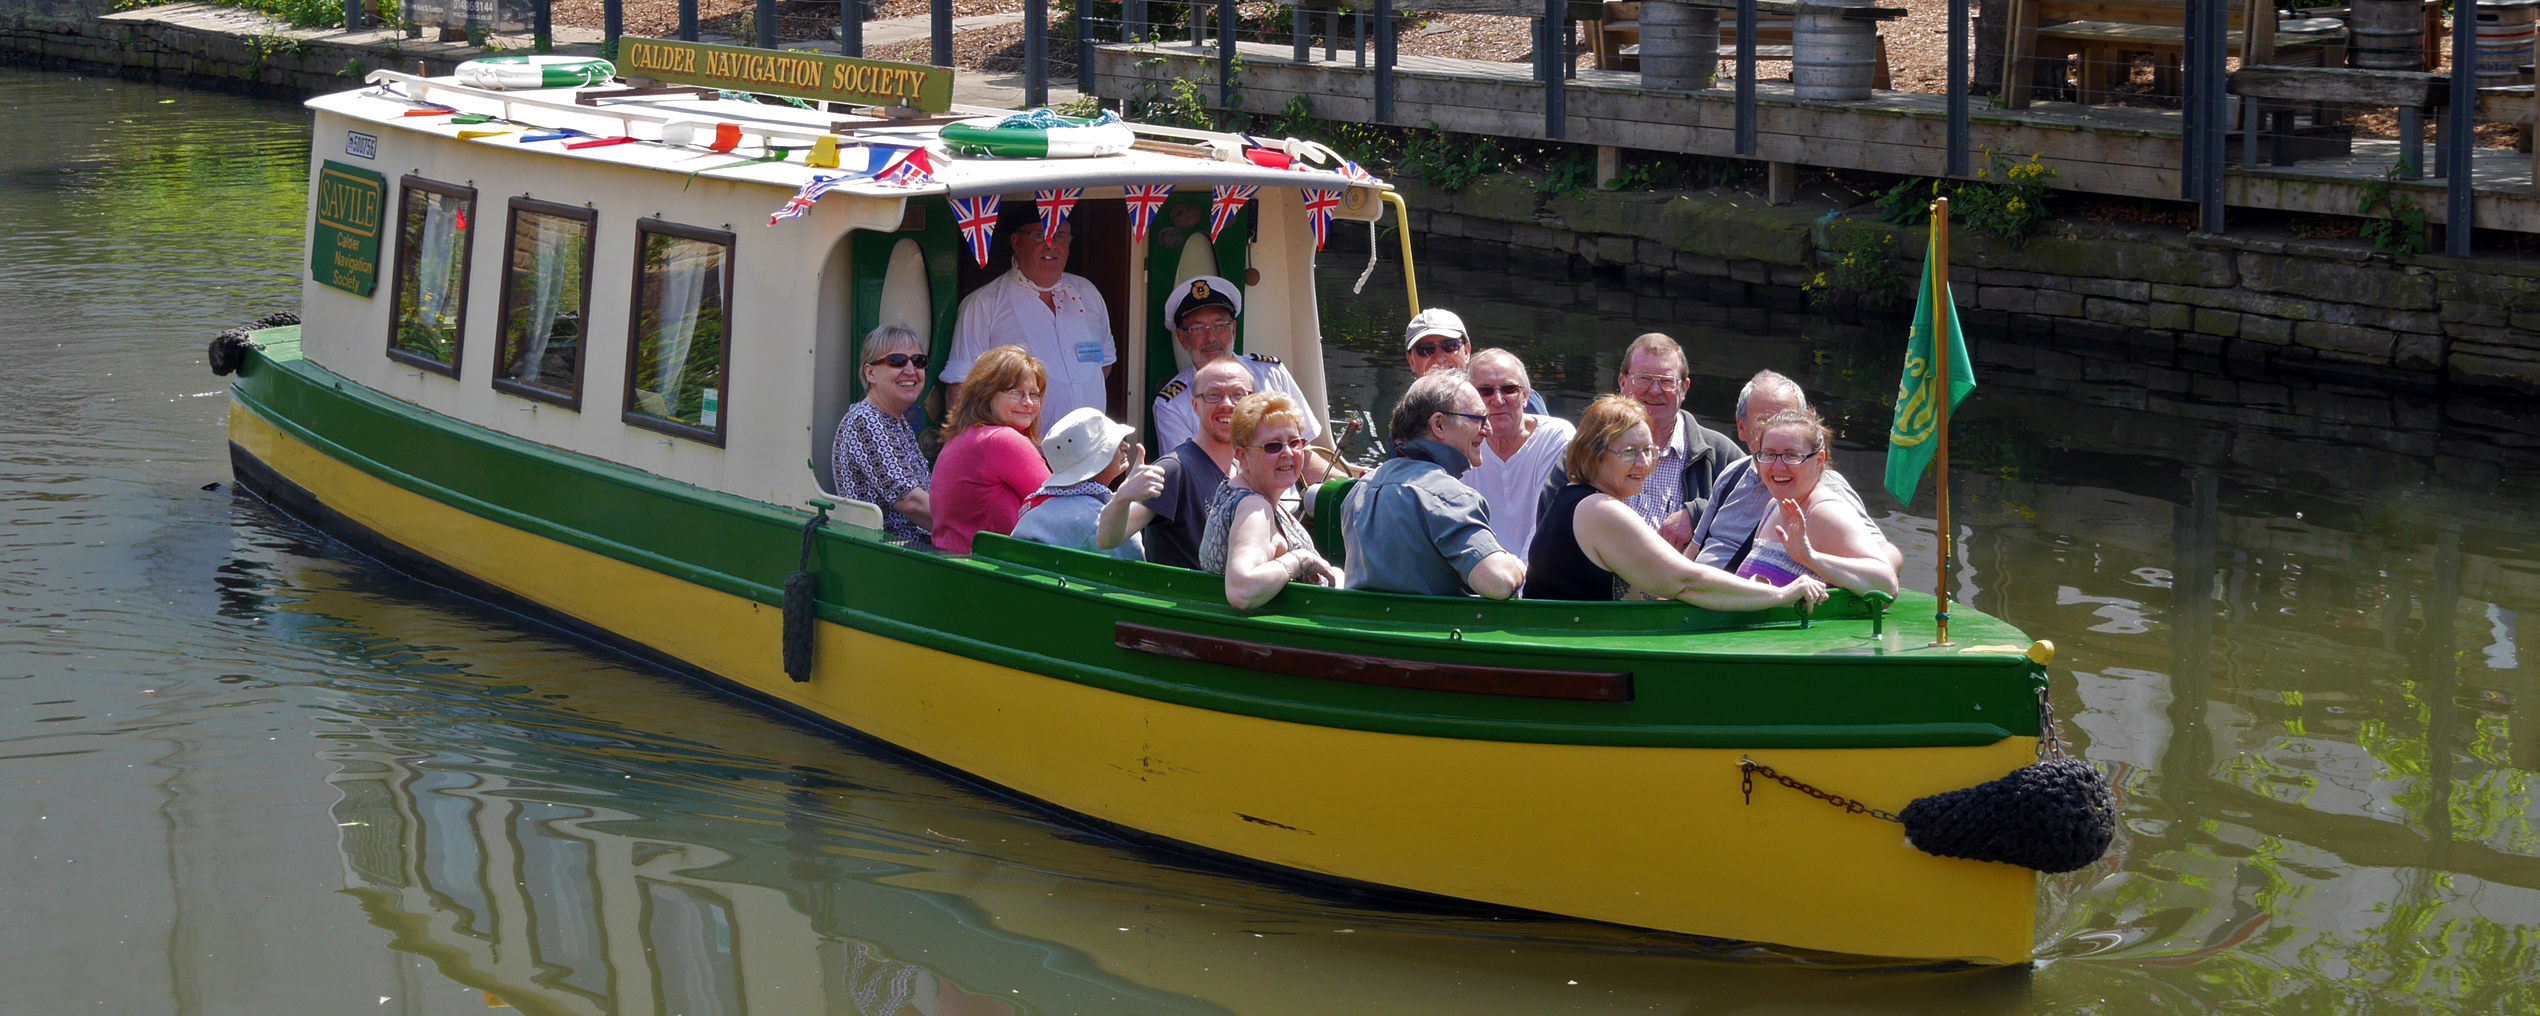 Brighouse 1940s Weekend Canal Boat